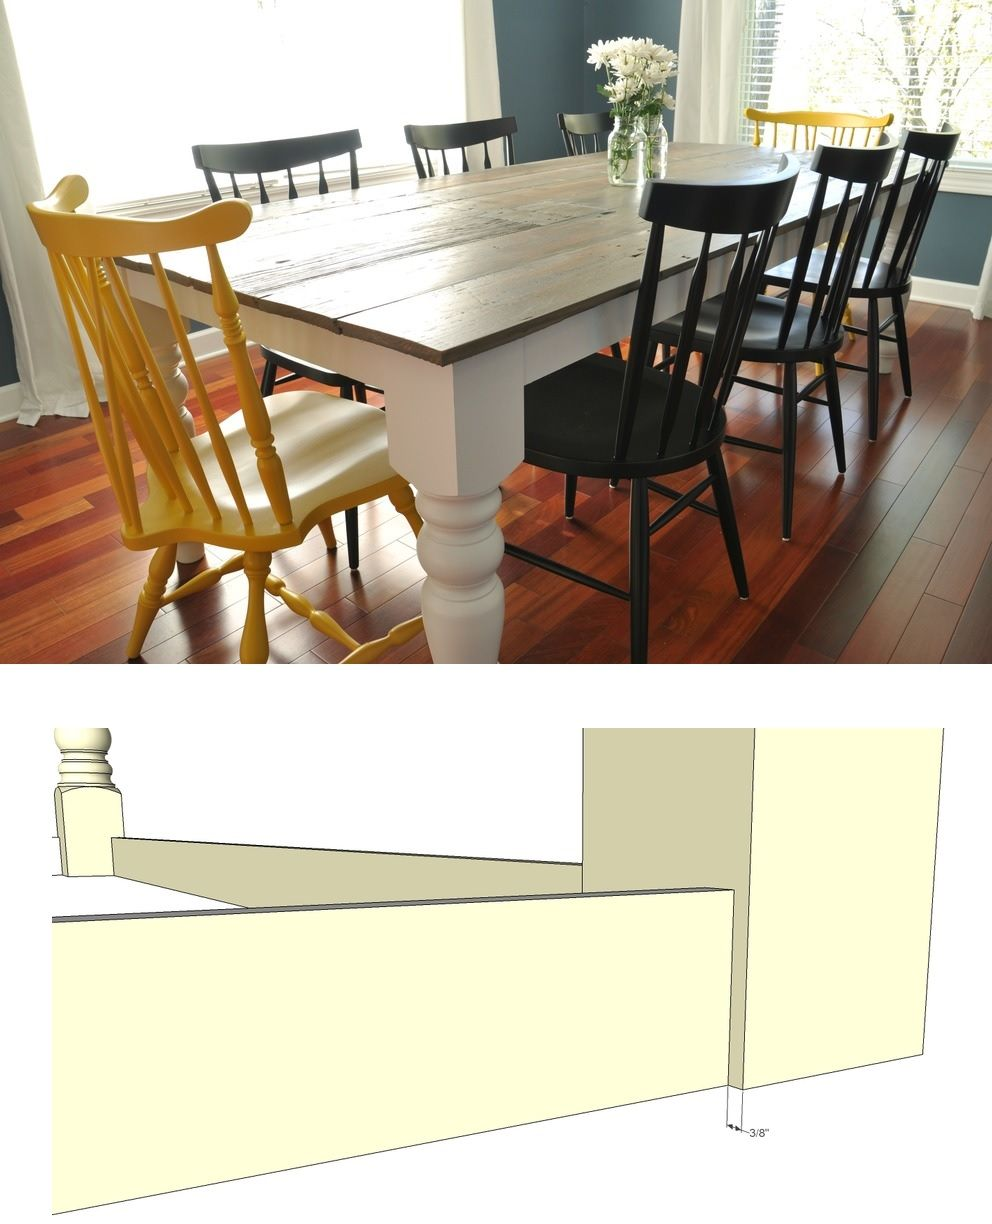 1557928868 23 diy farmhouse kitchen table projects for beginners - DIY Farmhouse Kitchen Table Projects For Beginners